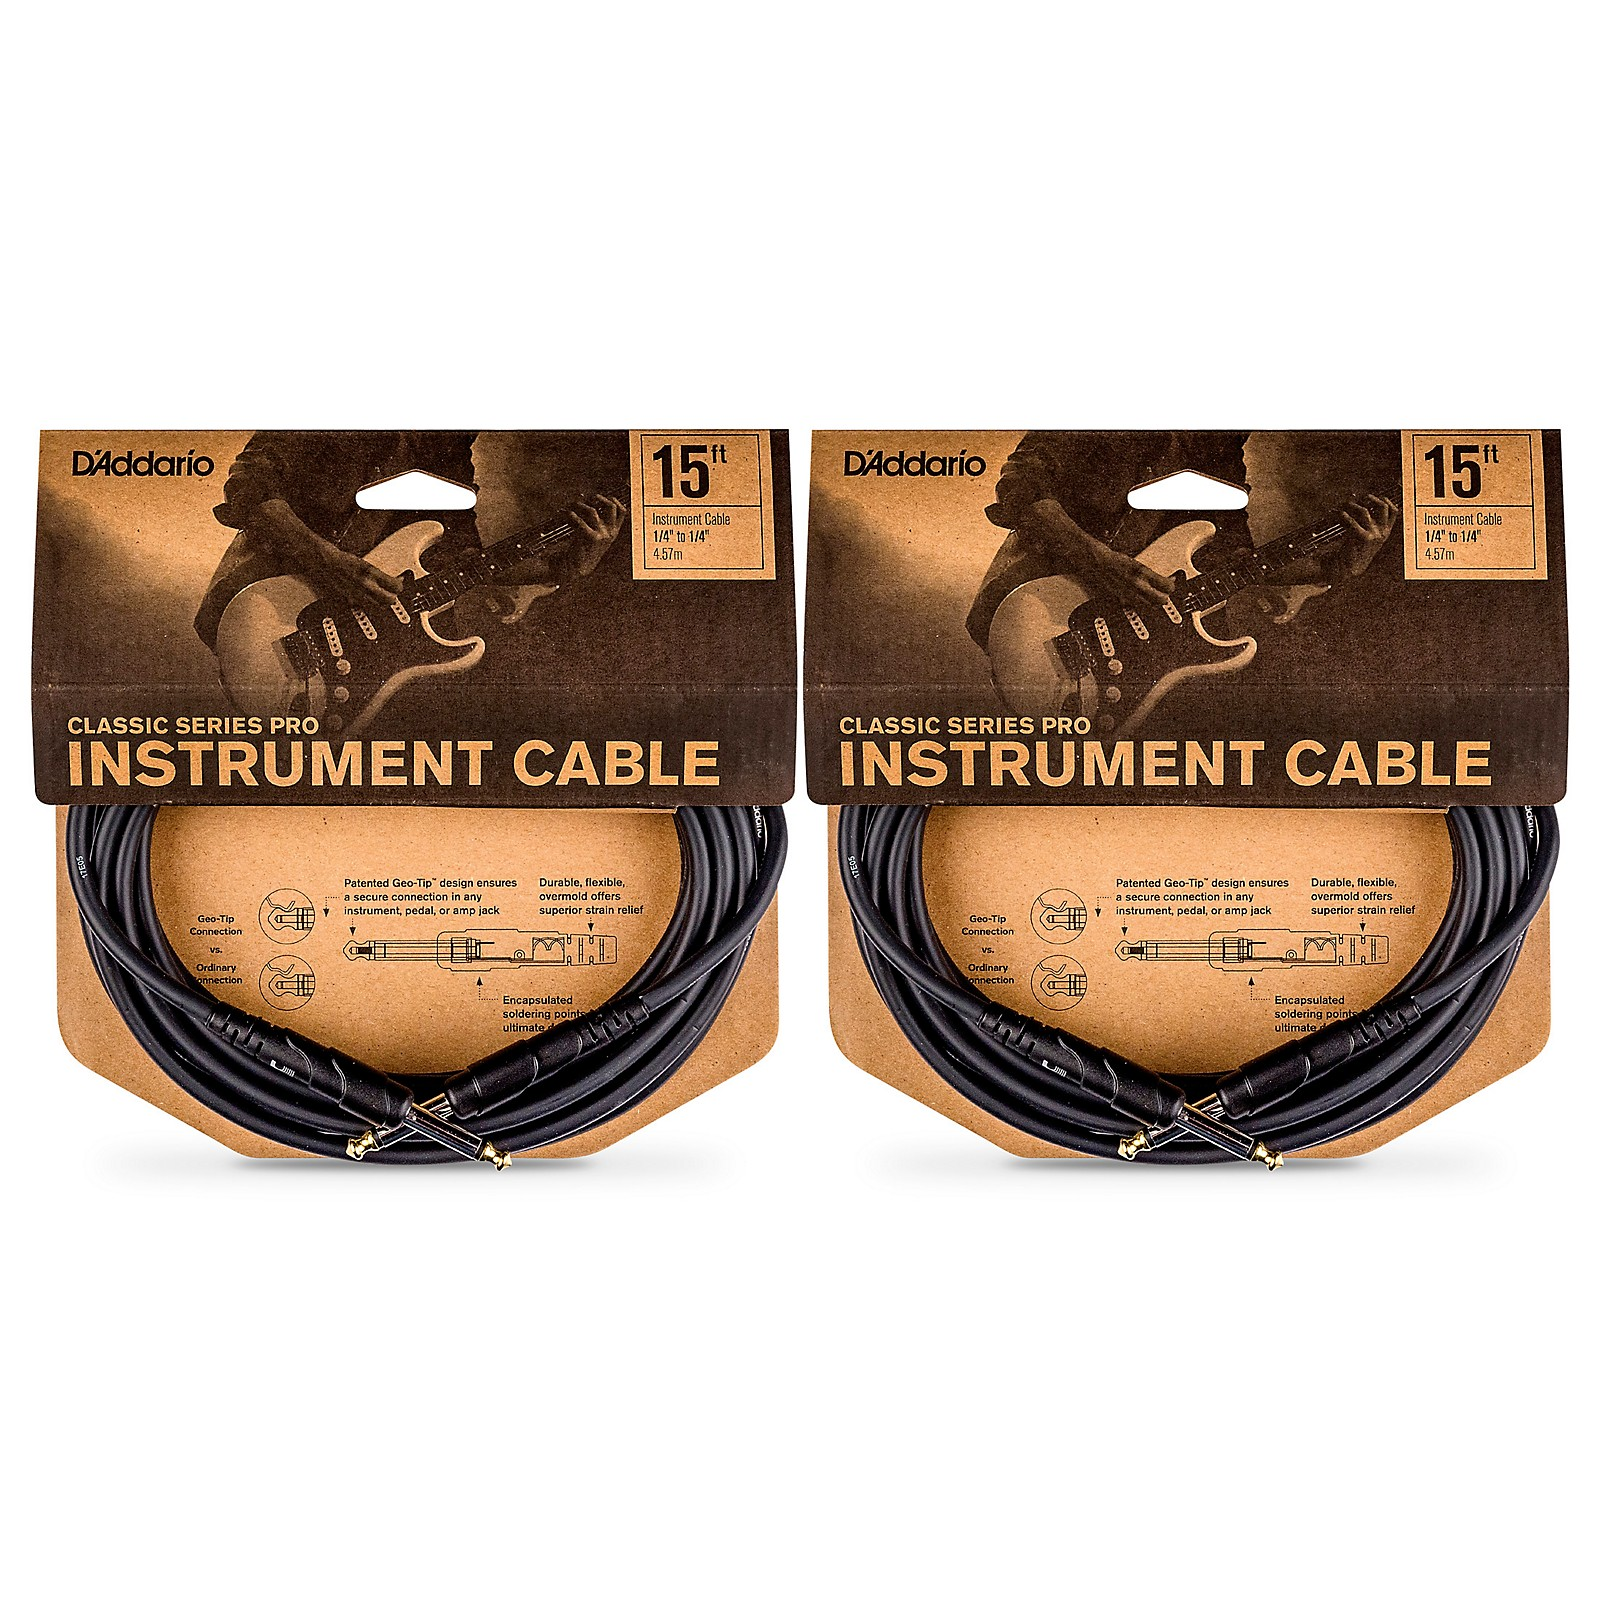 D'Addario Classic Pro Series Instrument Cable - 15 ft. - 2-Pack